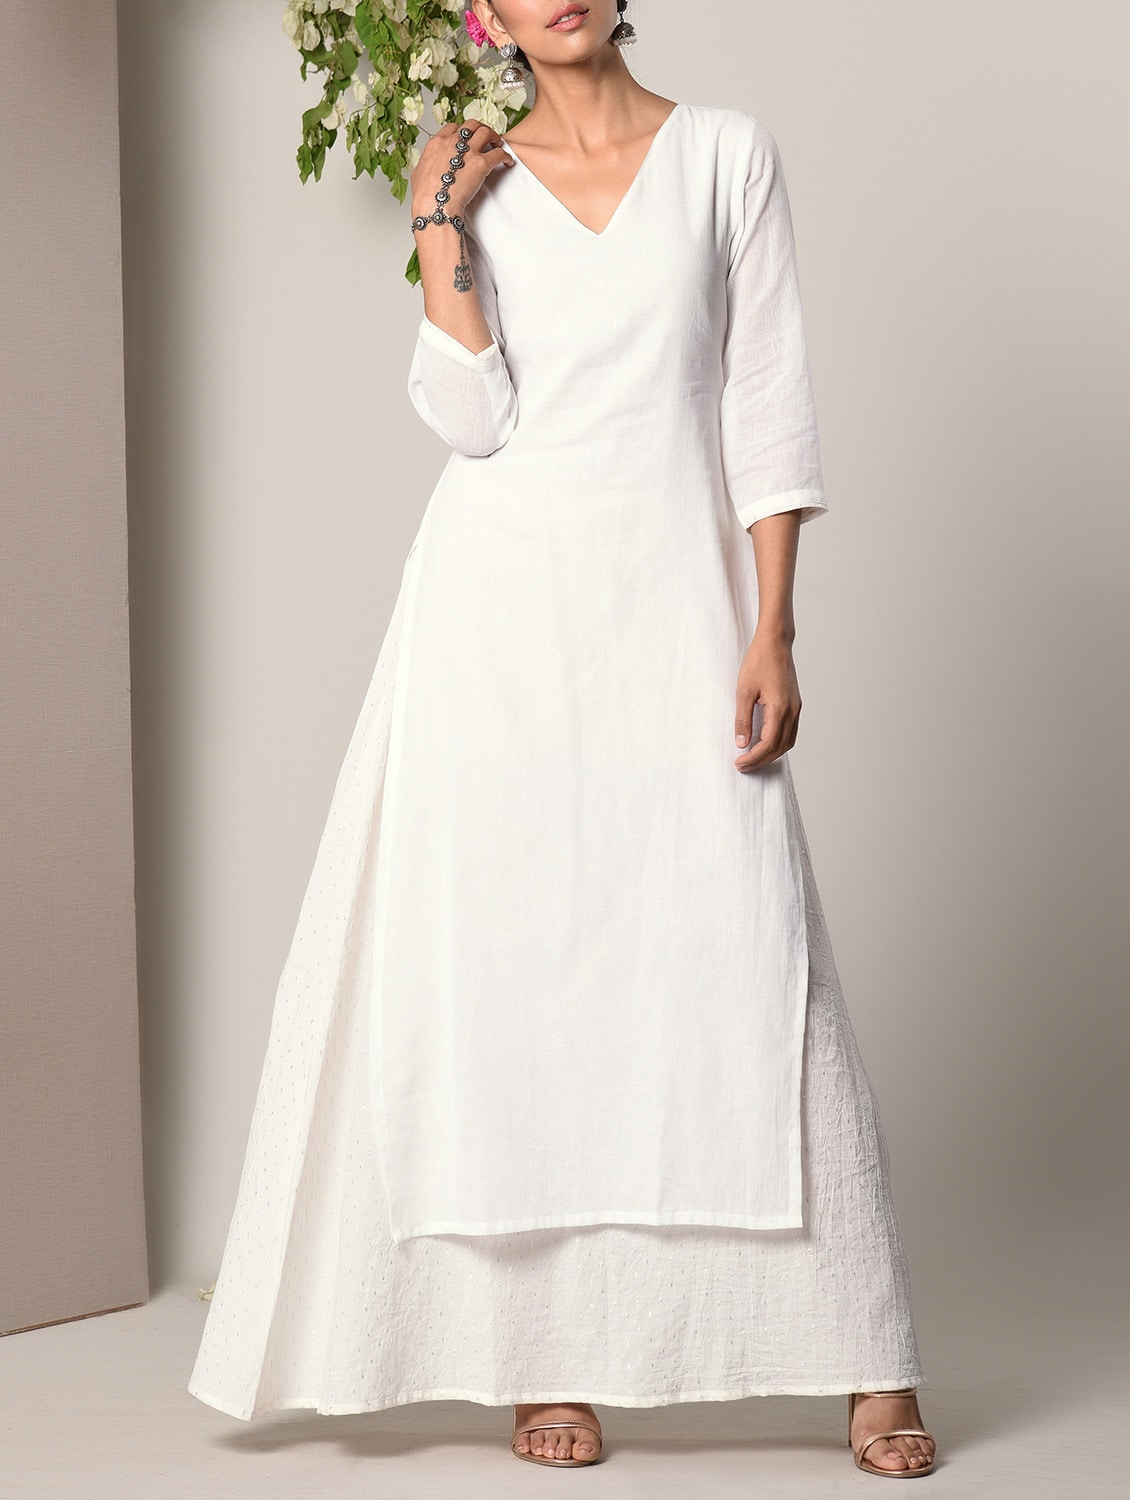 e2f3cc2afe5a Buy White Layered Cotton Maxi Dress for Women from Truebrowns for ₹3199 at  0% off